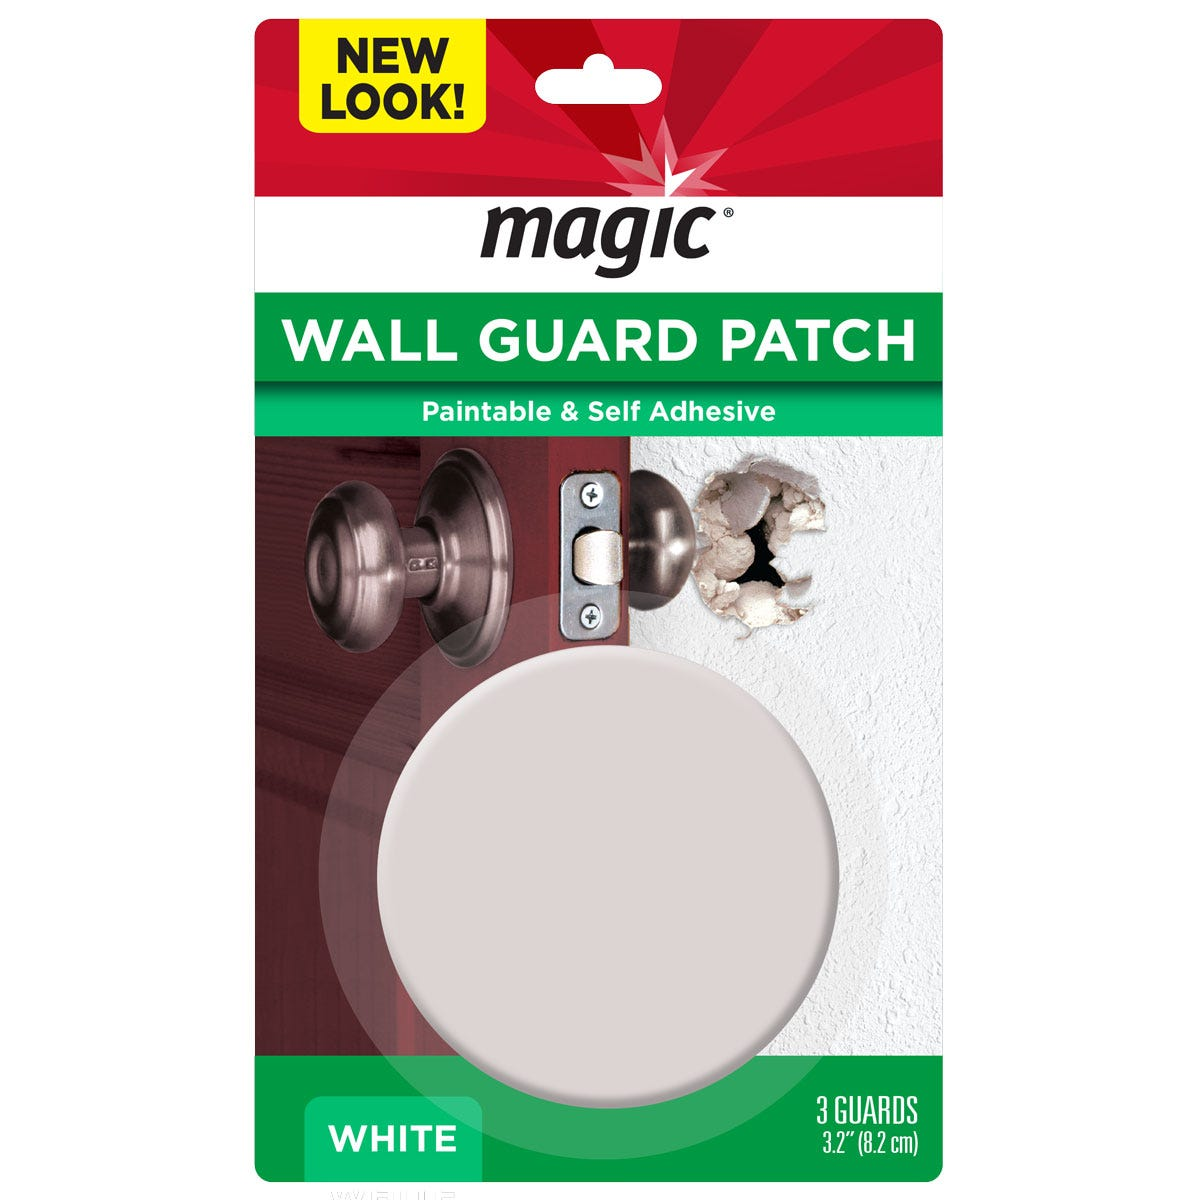 https://googone.com/media/catalog/product/w/a/wall-hole-patch_front_1.jpg